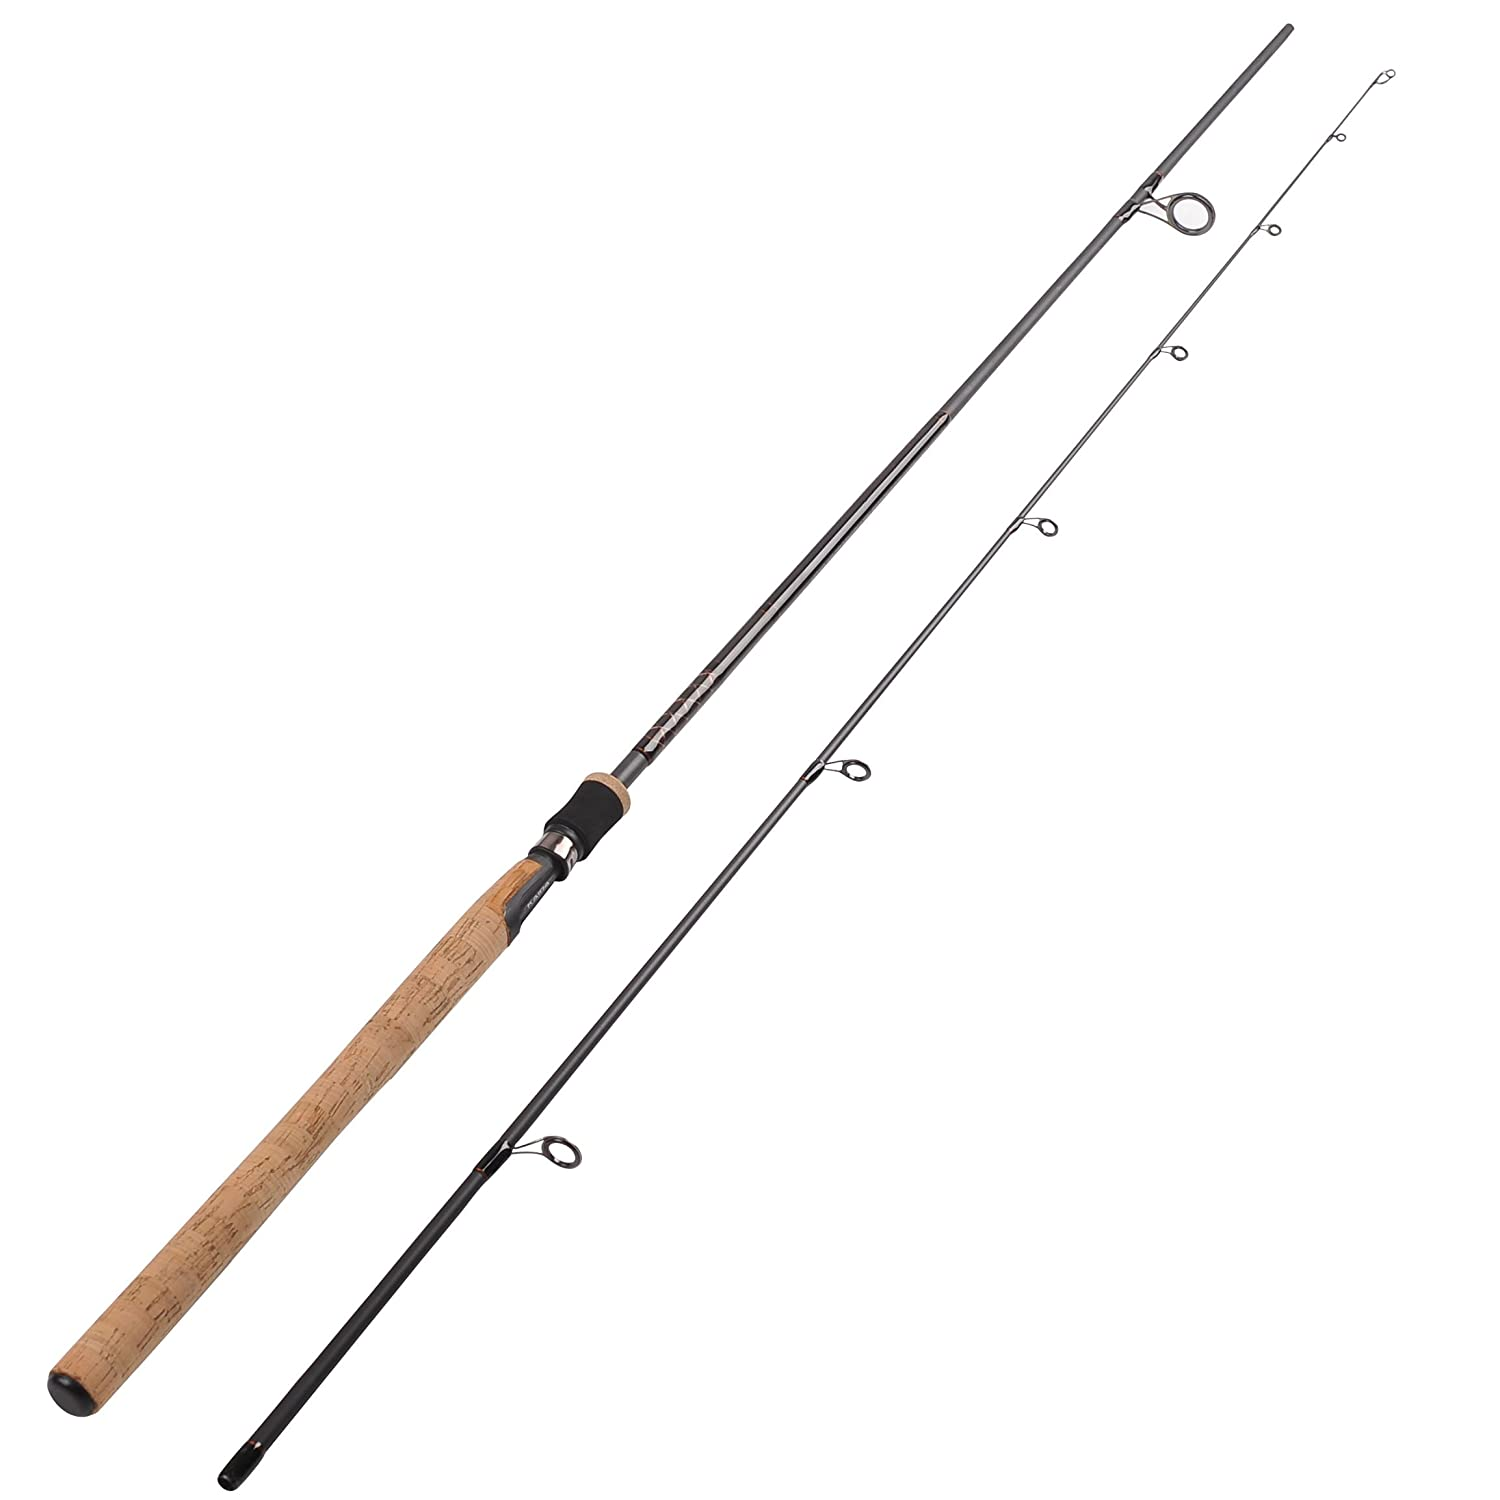 Fiblink sea bass fishing rod 2 piece medium heavy spinning for Heavy fishing rod